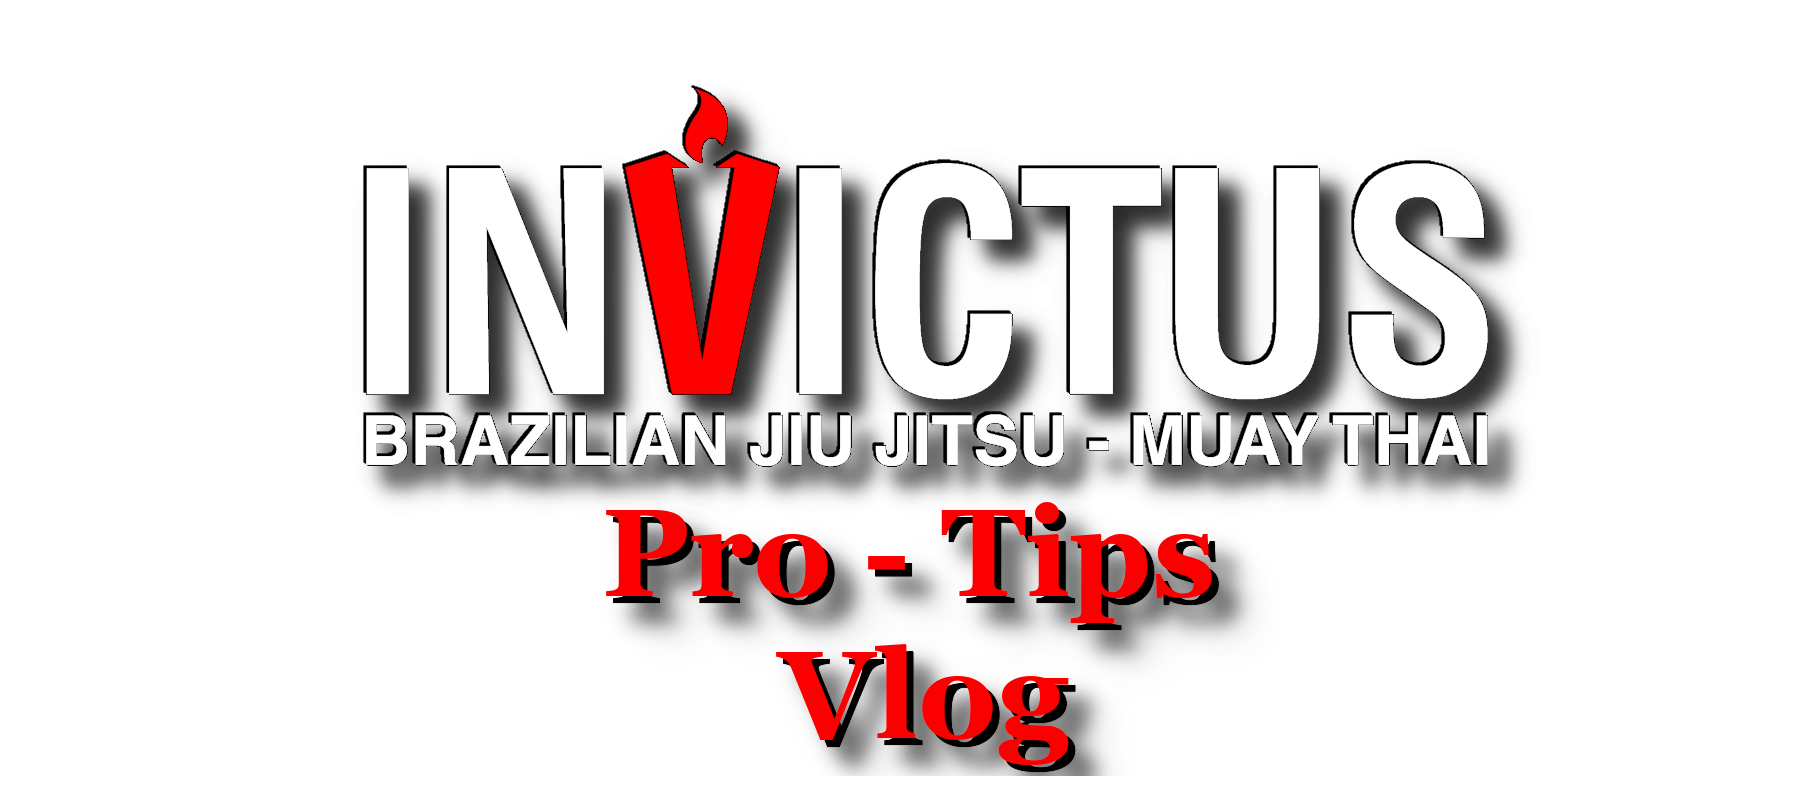 pro-tips logo.png